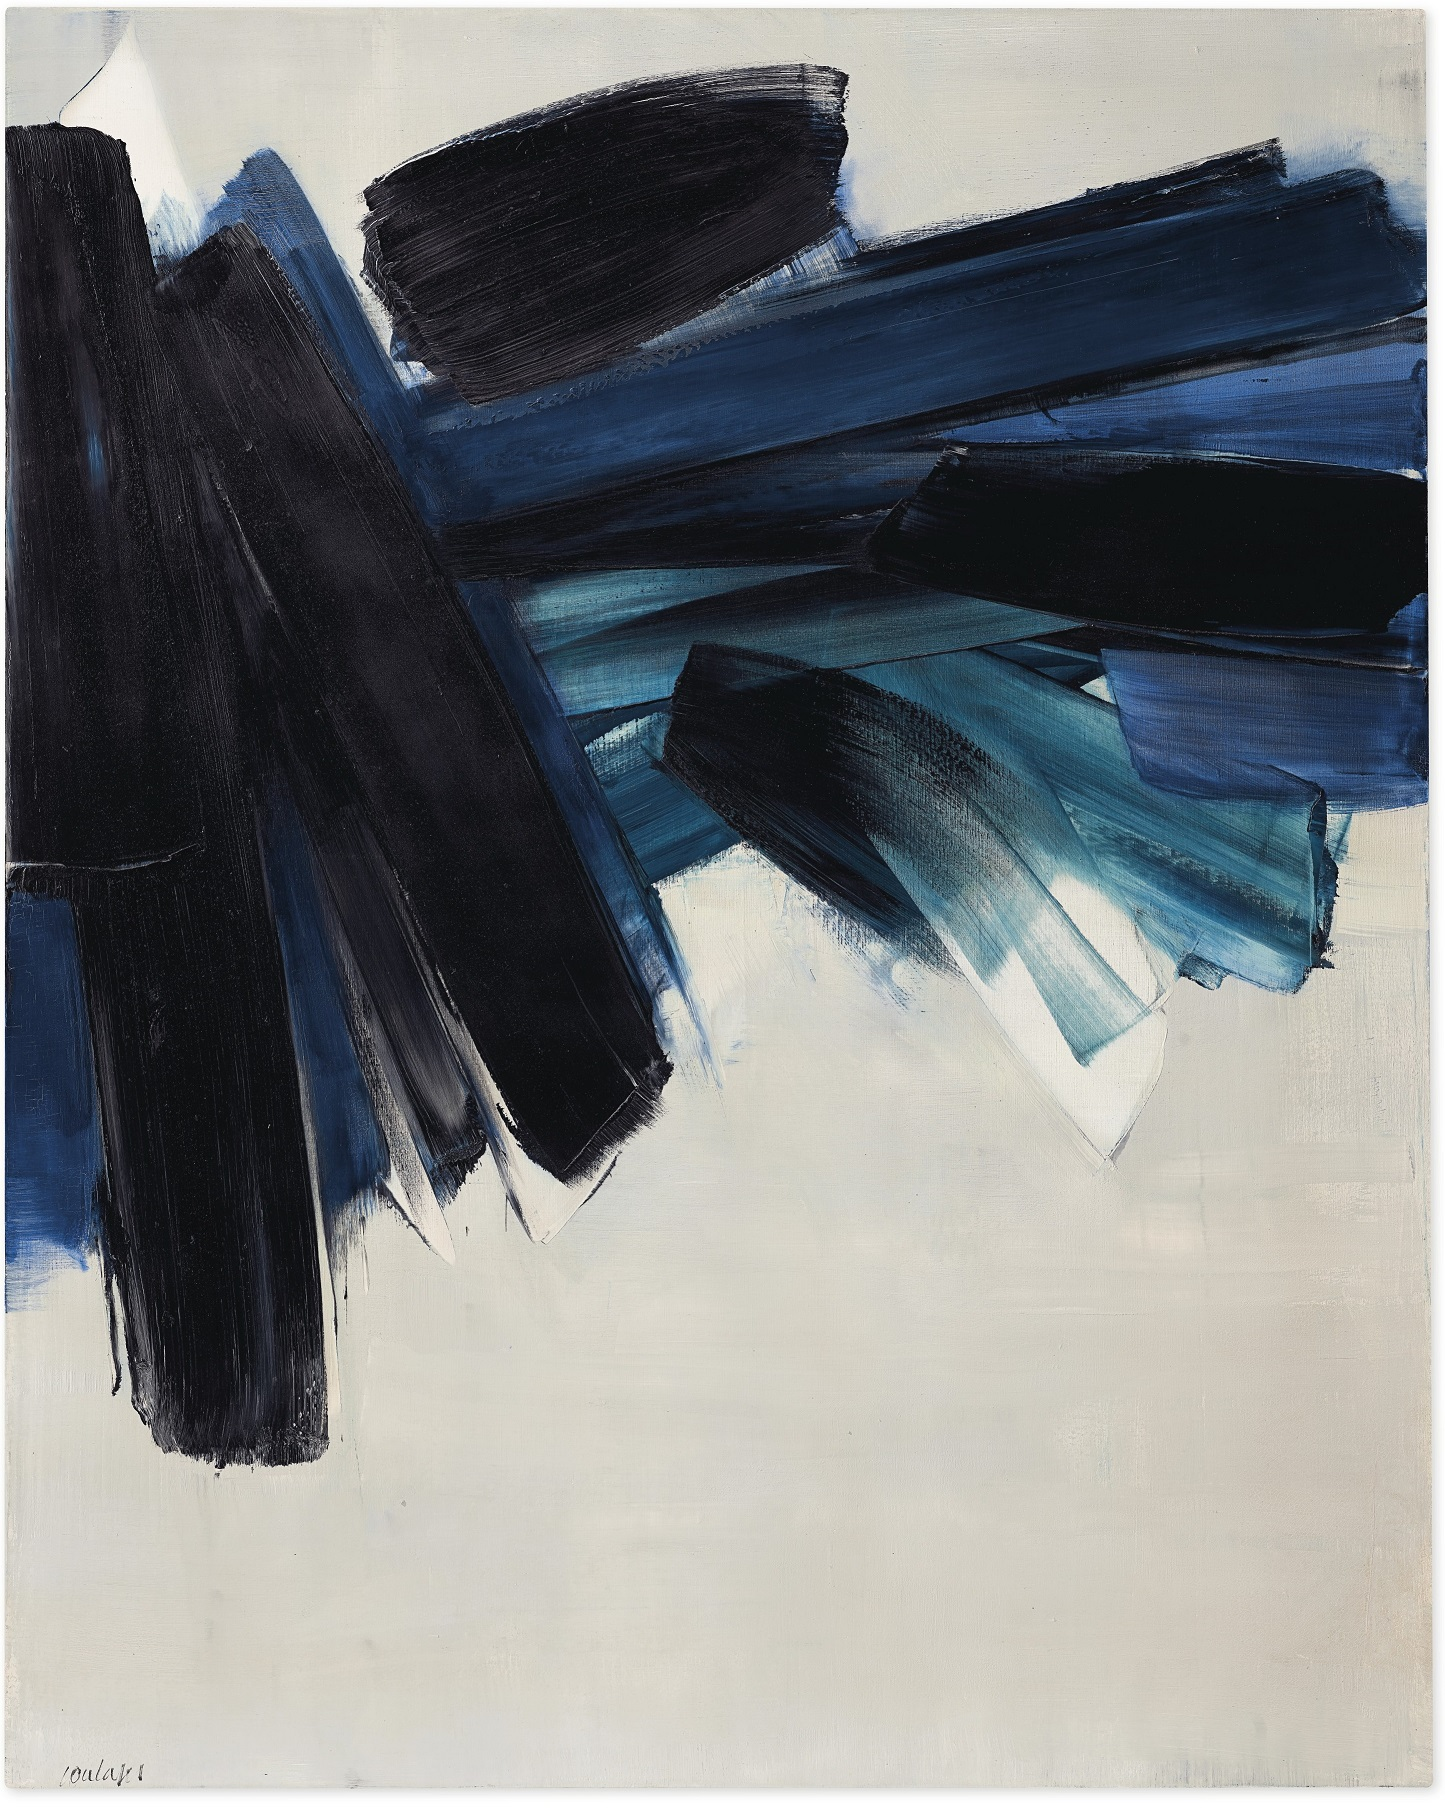 Pierre Soulages Work Offered In Paris Avant-Garde Sale At €8 Million